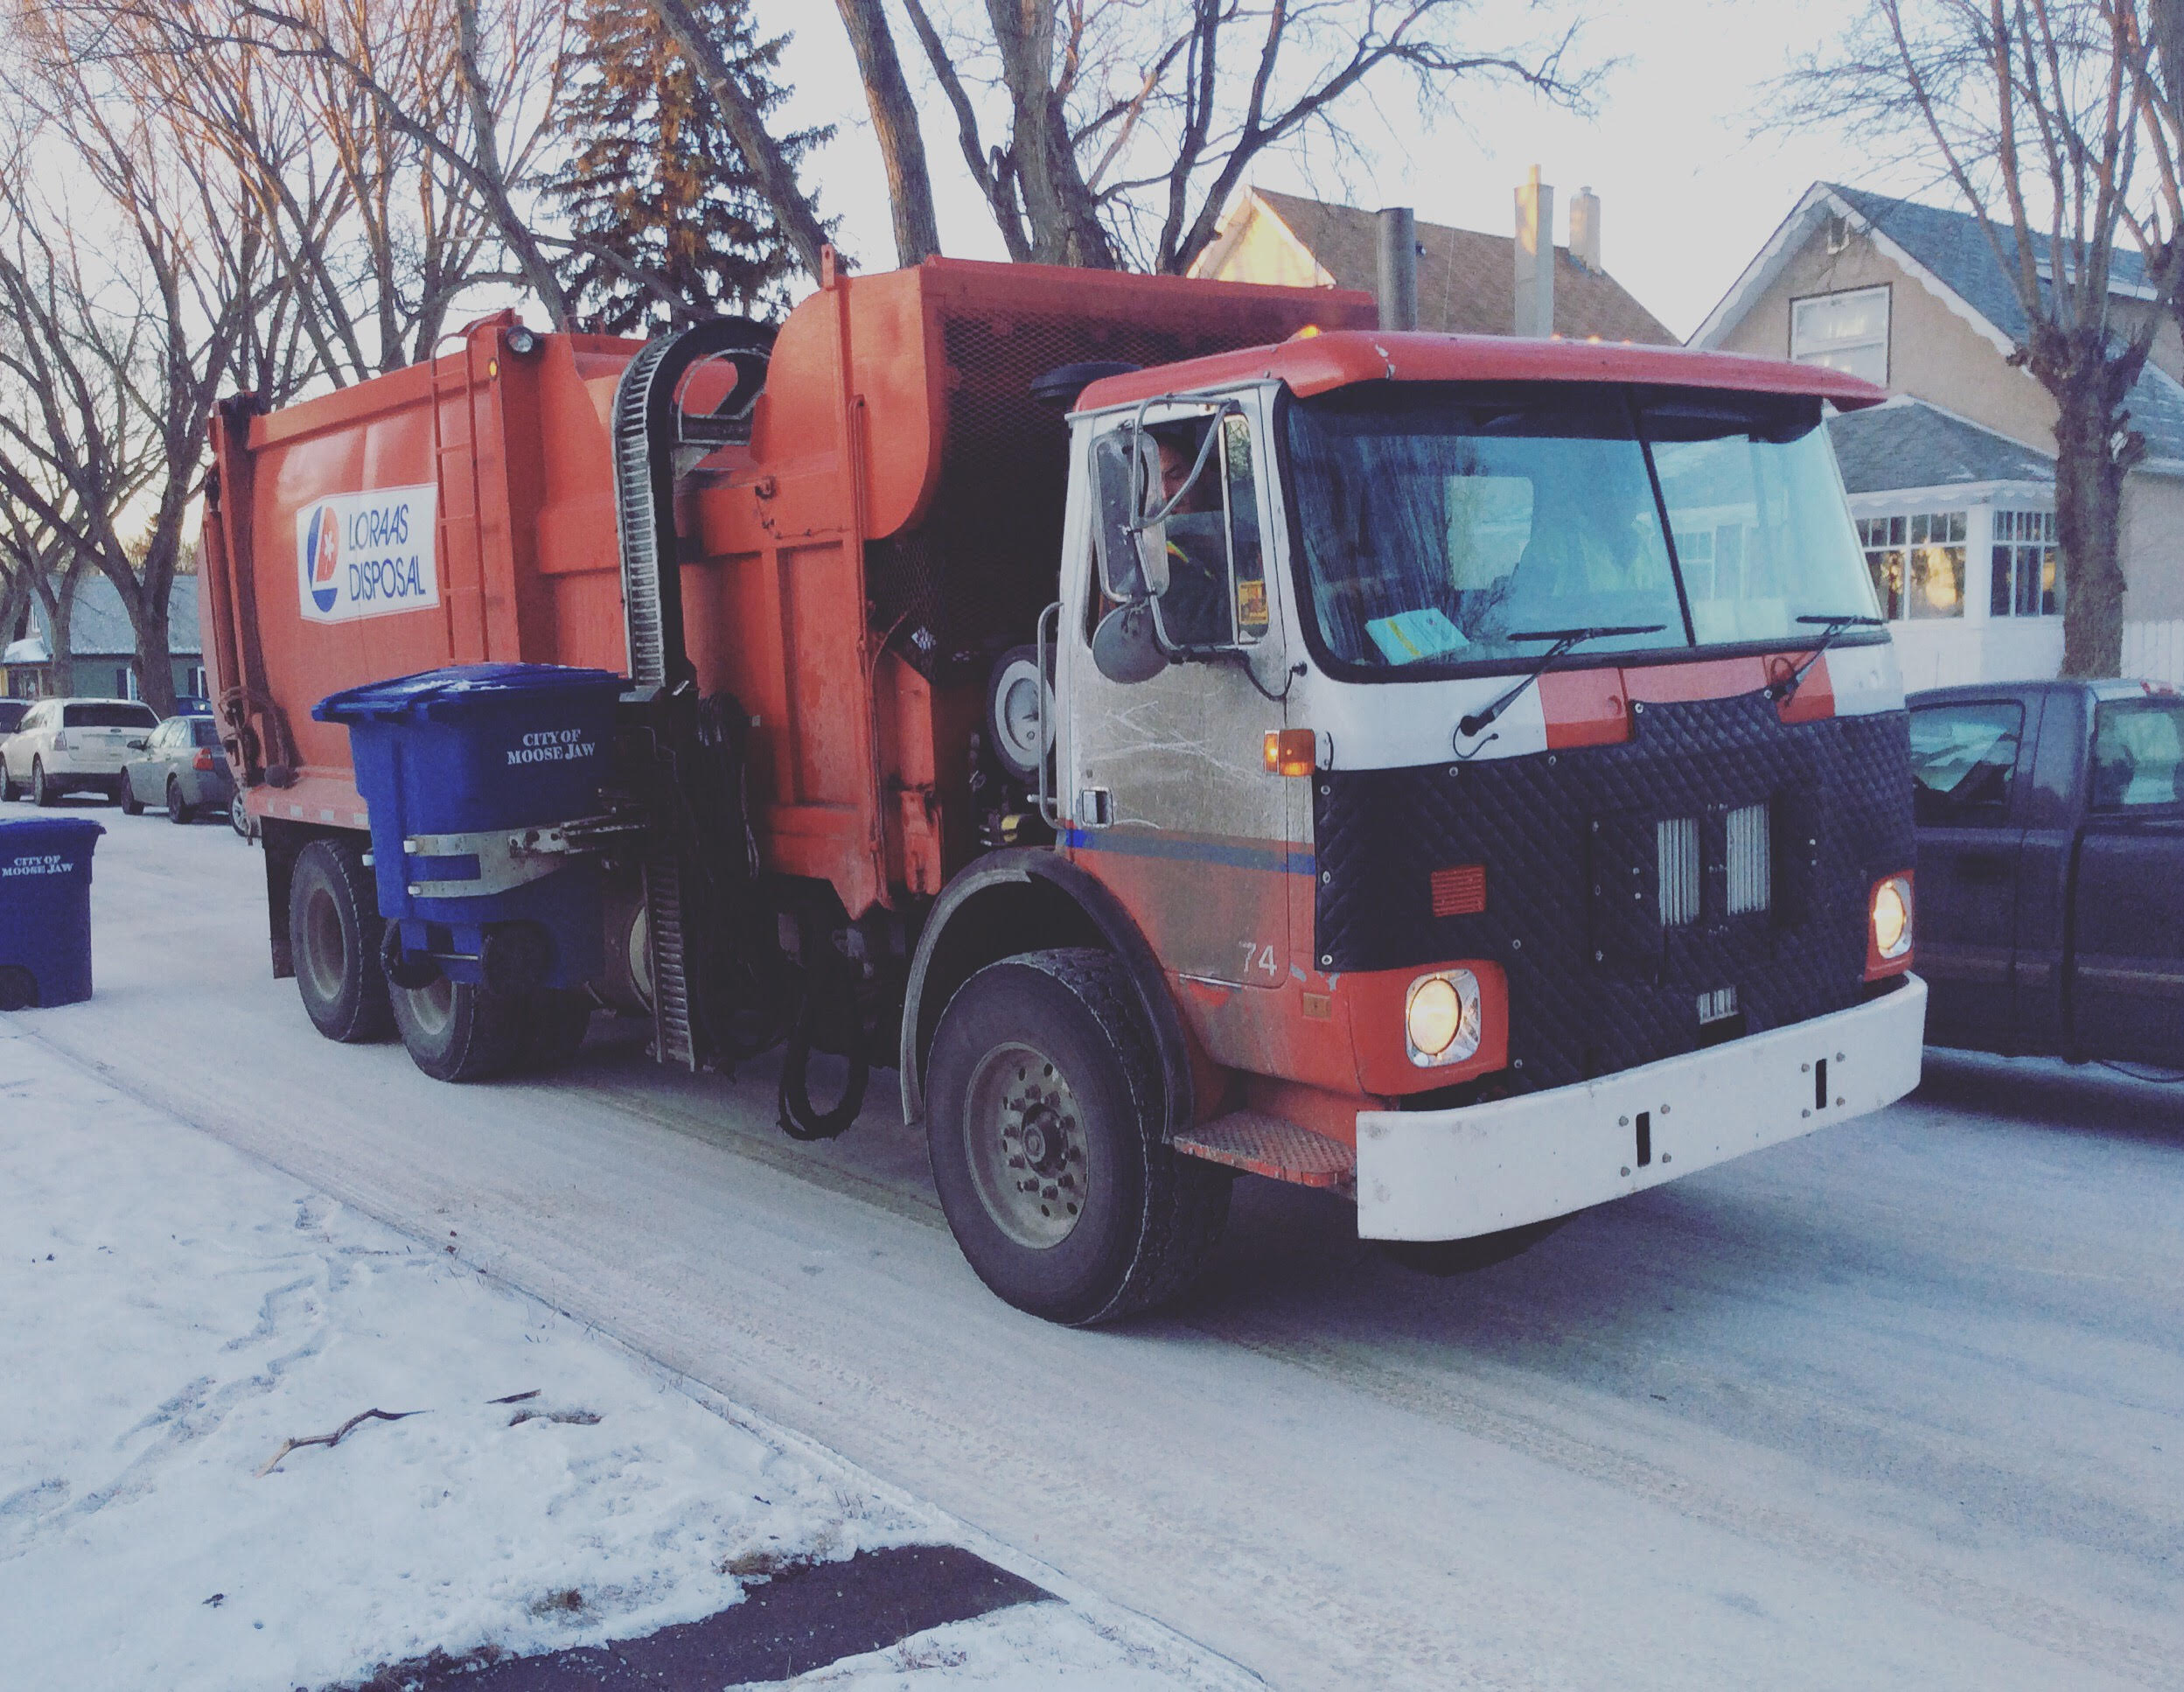 """City Seeking Input On Curbside Expansion    If a Saskatoon market survey company calls you, in the next little while, and you would like to have your say on curbside garbage collection, the City of Moose Jaw would like you to pick up the phone.    Starting at the end of the month, Insightrix Research, out of Saskatoon, will be telephoning 400 random Moose Jaw residents and asking them voice their opinions on curbside garbage collection.    """"It's a survey on curbside collection, as last Fall Council directed administration to consult with residents before further curbside expansion,"""" Craig Hemingway, Communictions Director for the City of Moose Jaw said.    The $10,000 telephone survey will see 200 people called in Zones 1-4 (areas which have already transitioned to curbside) and 200 people called in Zones 5-8 (areas not yet transitioned to curbside) to get their input.All of the people telephoned will be done at random.    The survey will consist of eight to ten questions and will only take a few minutes. The questions are still being drafted by the Engineering and Communications department, with the assistance of Insightrix, who are experts in the field.    """"We value resident's input,"""" Hemingway said, while encouraging residents to complete the telephone survey.    Asked if Insightrix would use the list of residents answering the phone for unrelated projects, Hemingway said """"not that I am aware of.""""    The telephone survey was chosen because it was seen as the most objective way for residents to voice their opinions.    The topic of budgetary impact also will be part of the survey.    It needs to be noted that there were some efficiencies found in the initial curbside rollout. Plus, there are quality of life aspects to be considered, Hemingway said.    At their January 13th Budget Committee meeting, Council was told GPS data showed curbside, in the areas already transitioned, was 18 per cent more efficient.    """"This is valuable information for Council. Council will"""